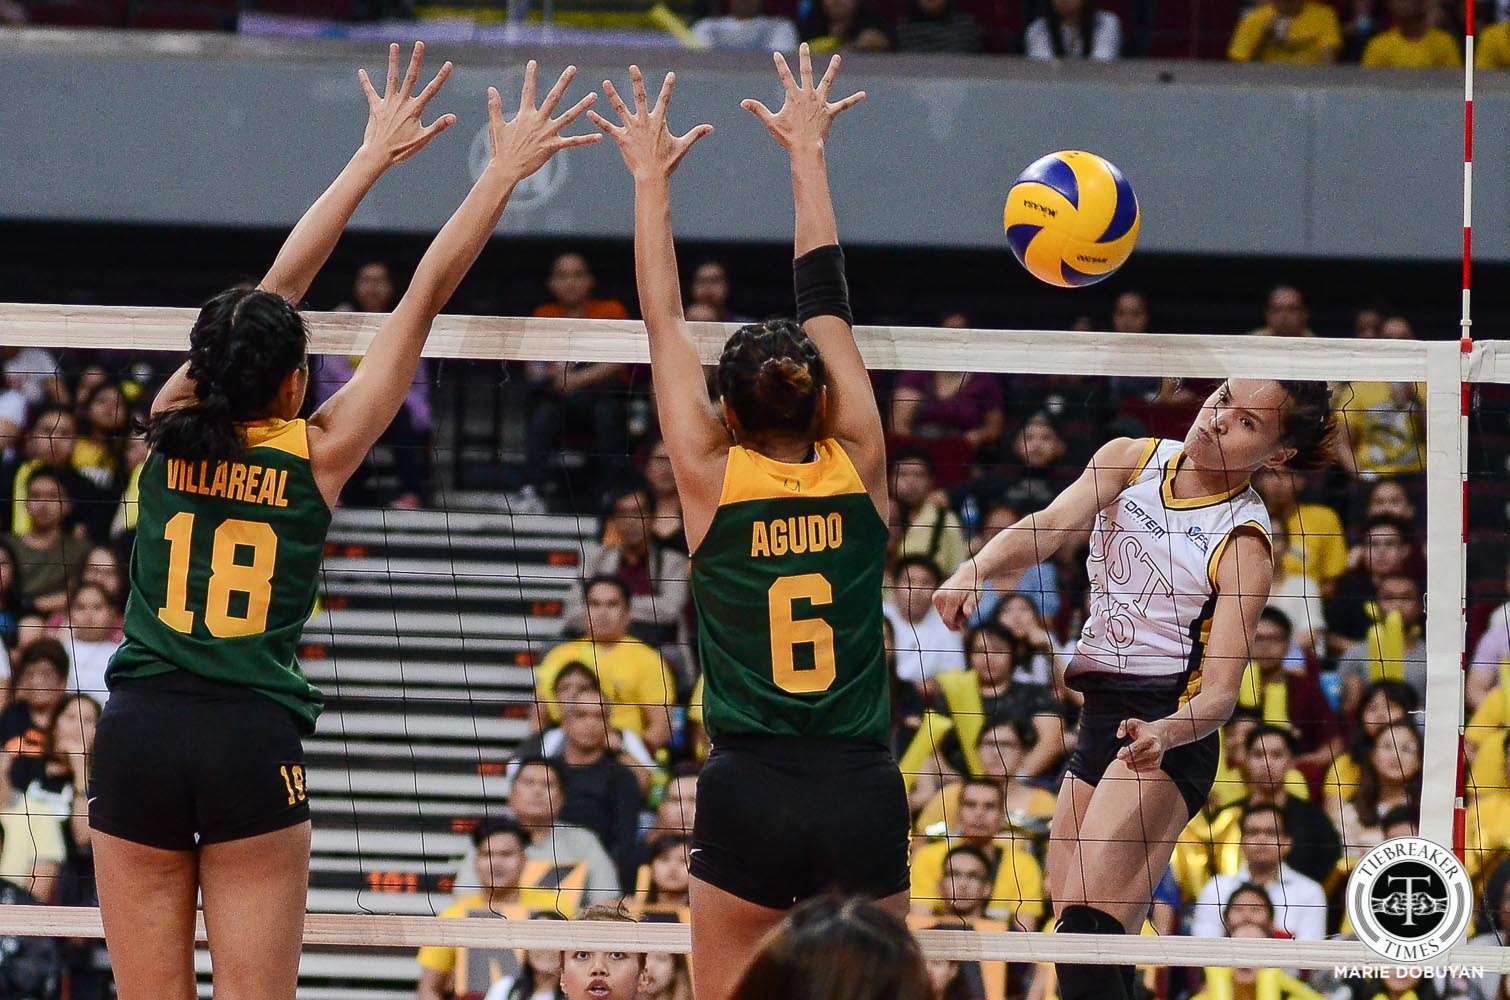 Tiebreaker Times UST Golden Tigresses stay in range of twice-to-beat advantage, dump FEU FEU News UAAP UST Volleyball  UST Women's Volleyball UAAP Season 81 Women's Volleyball UAAP Season 81 MaFe Galanza Kungfu Reyes Janel Delerio Heather Guino-o George Pascua FEU Women's Volleyball Eya Laure Cherry Rondina